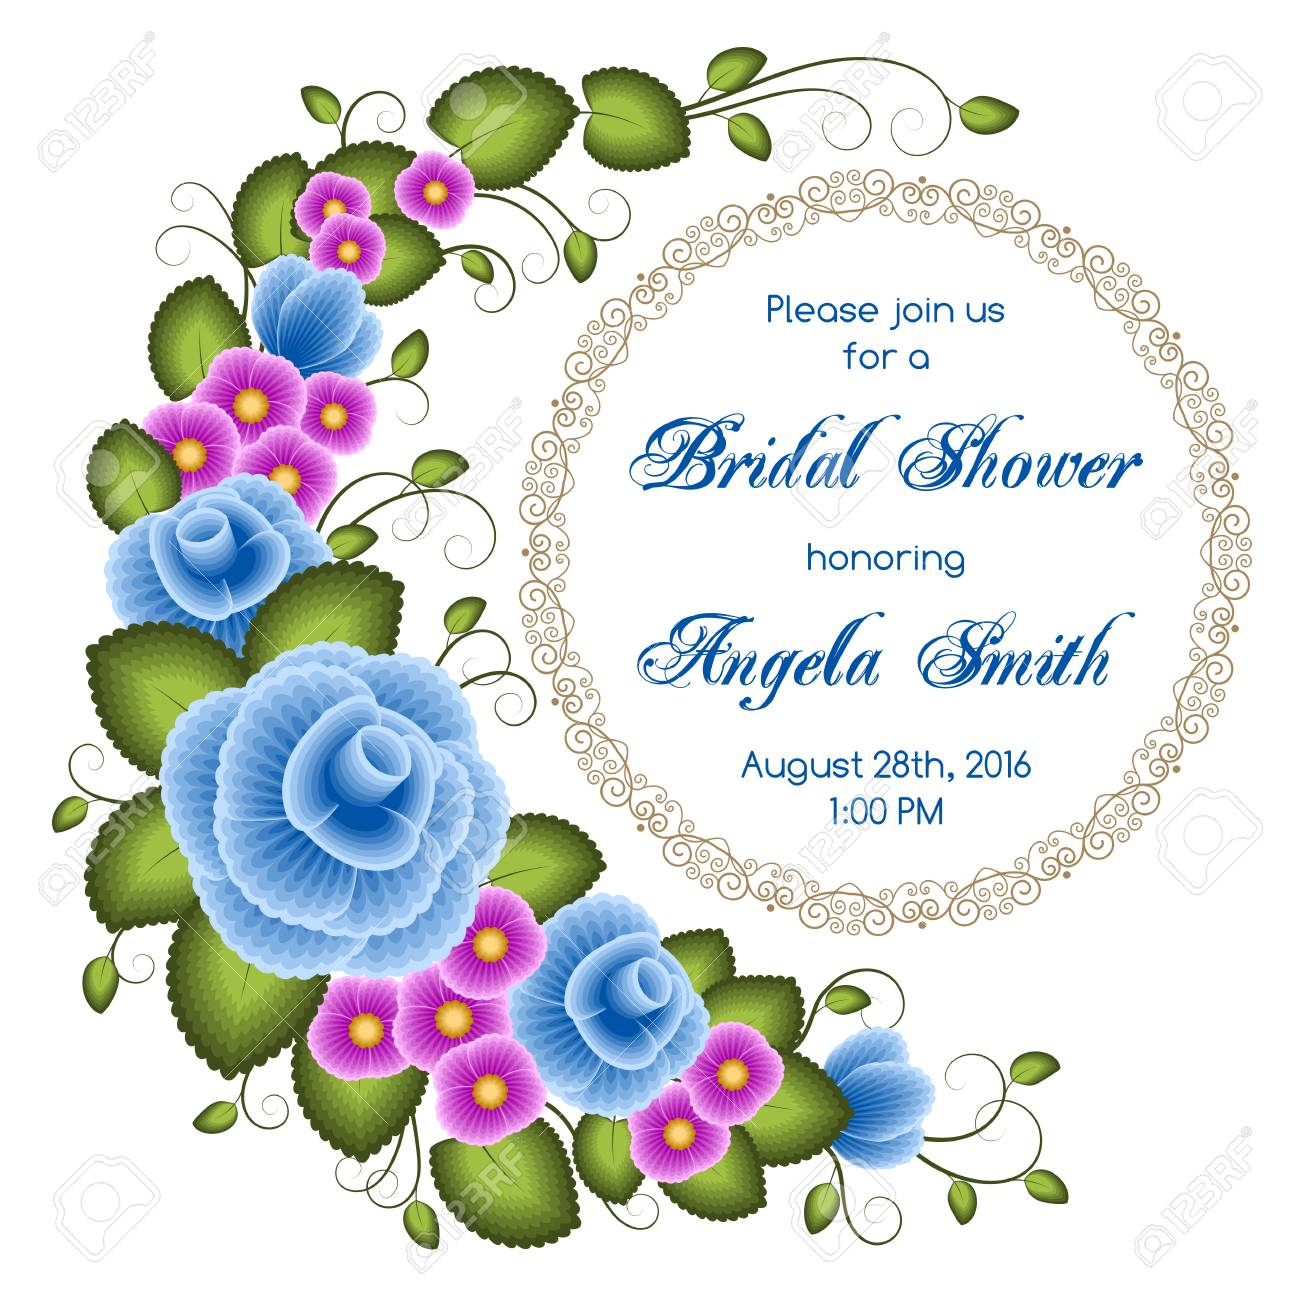 bridal shower invitation template with flowers illustration in one stroke painting style vector stock